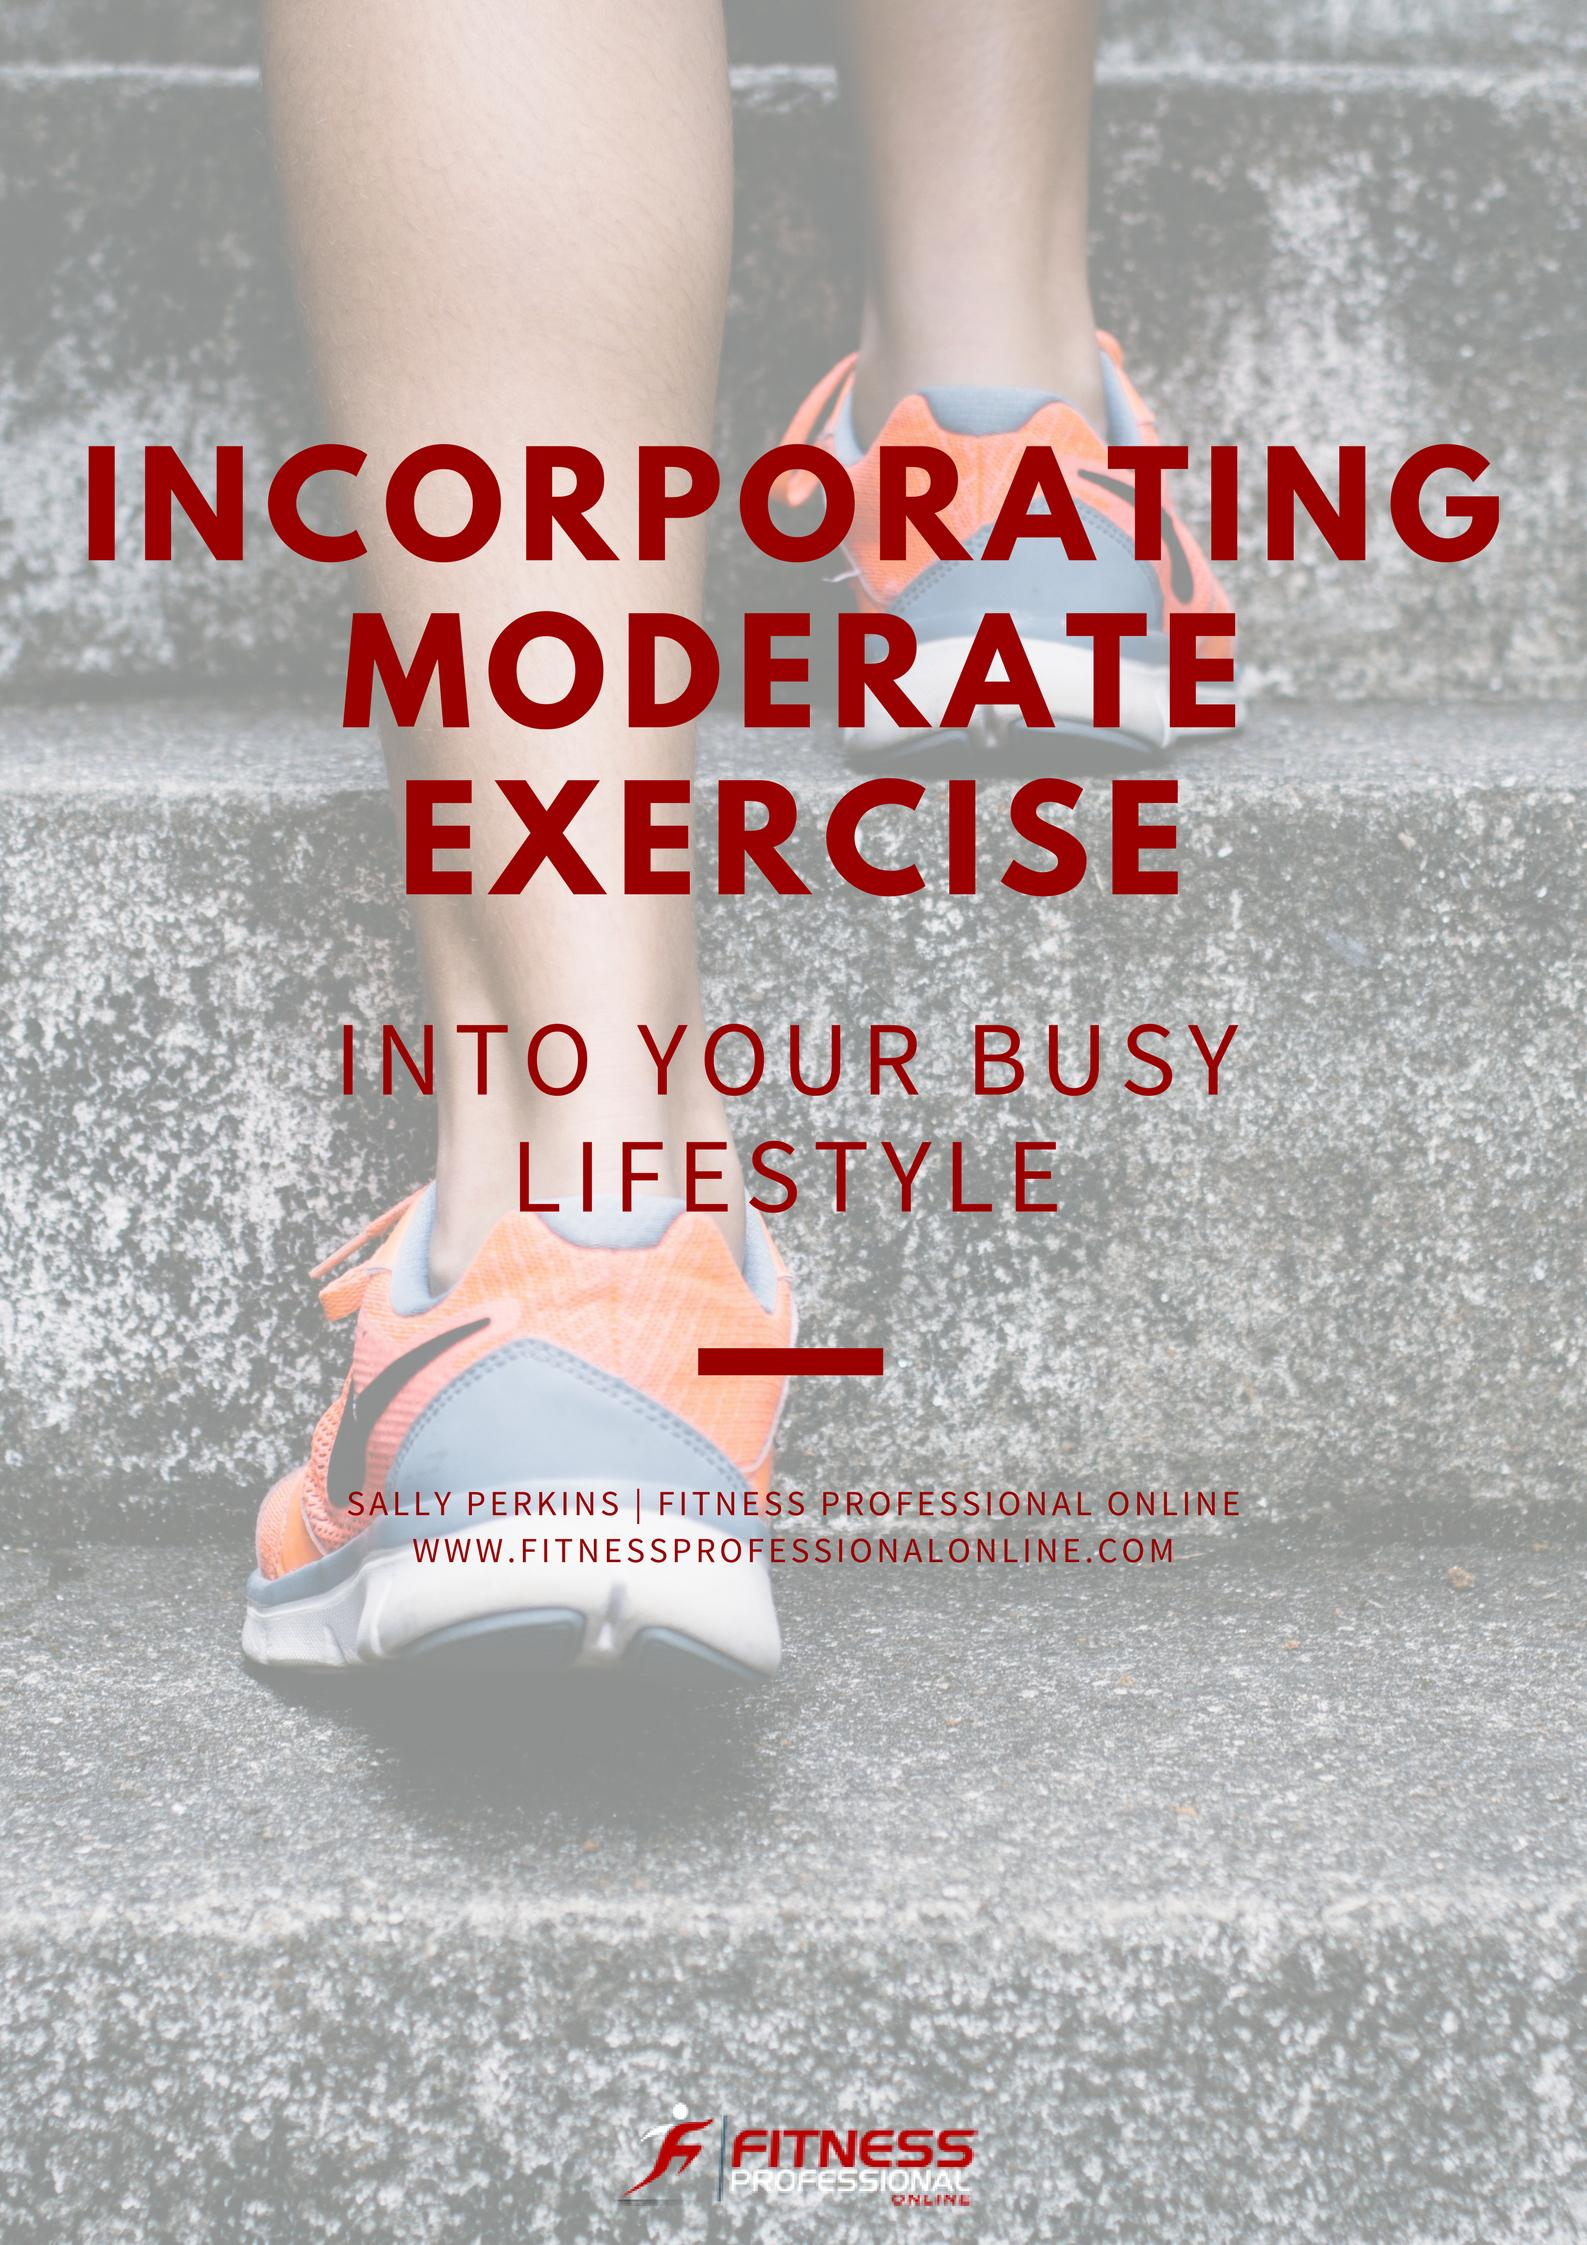 The following recommendations will help you to encourage your clients to incorporate exercise into their busy lifestyles at a gentle pace.